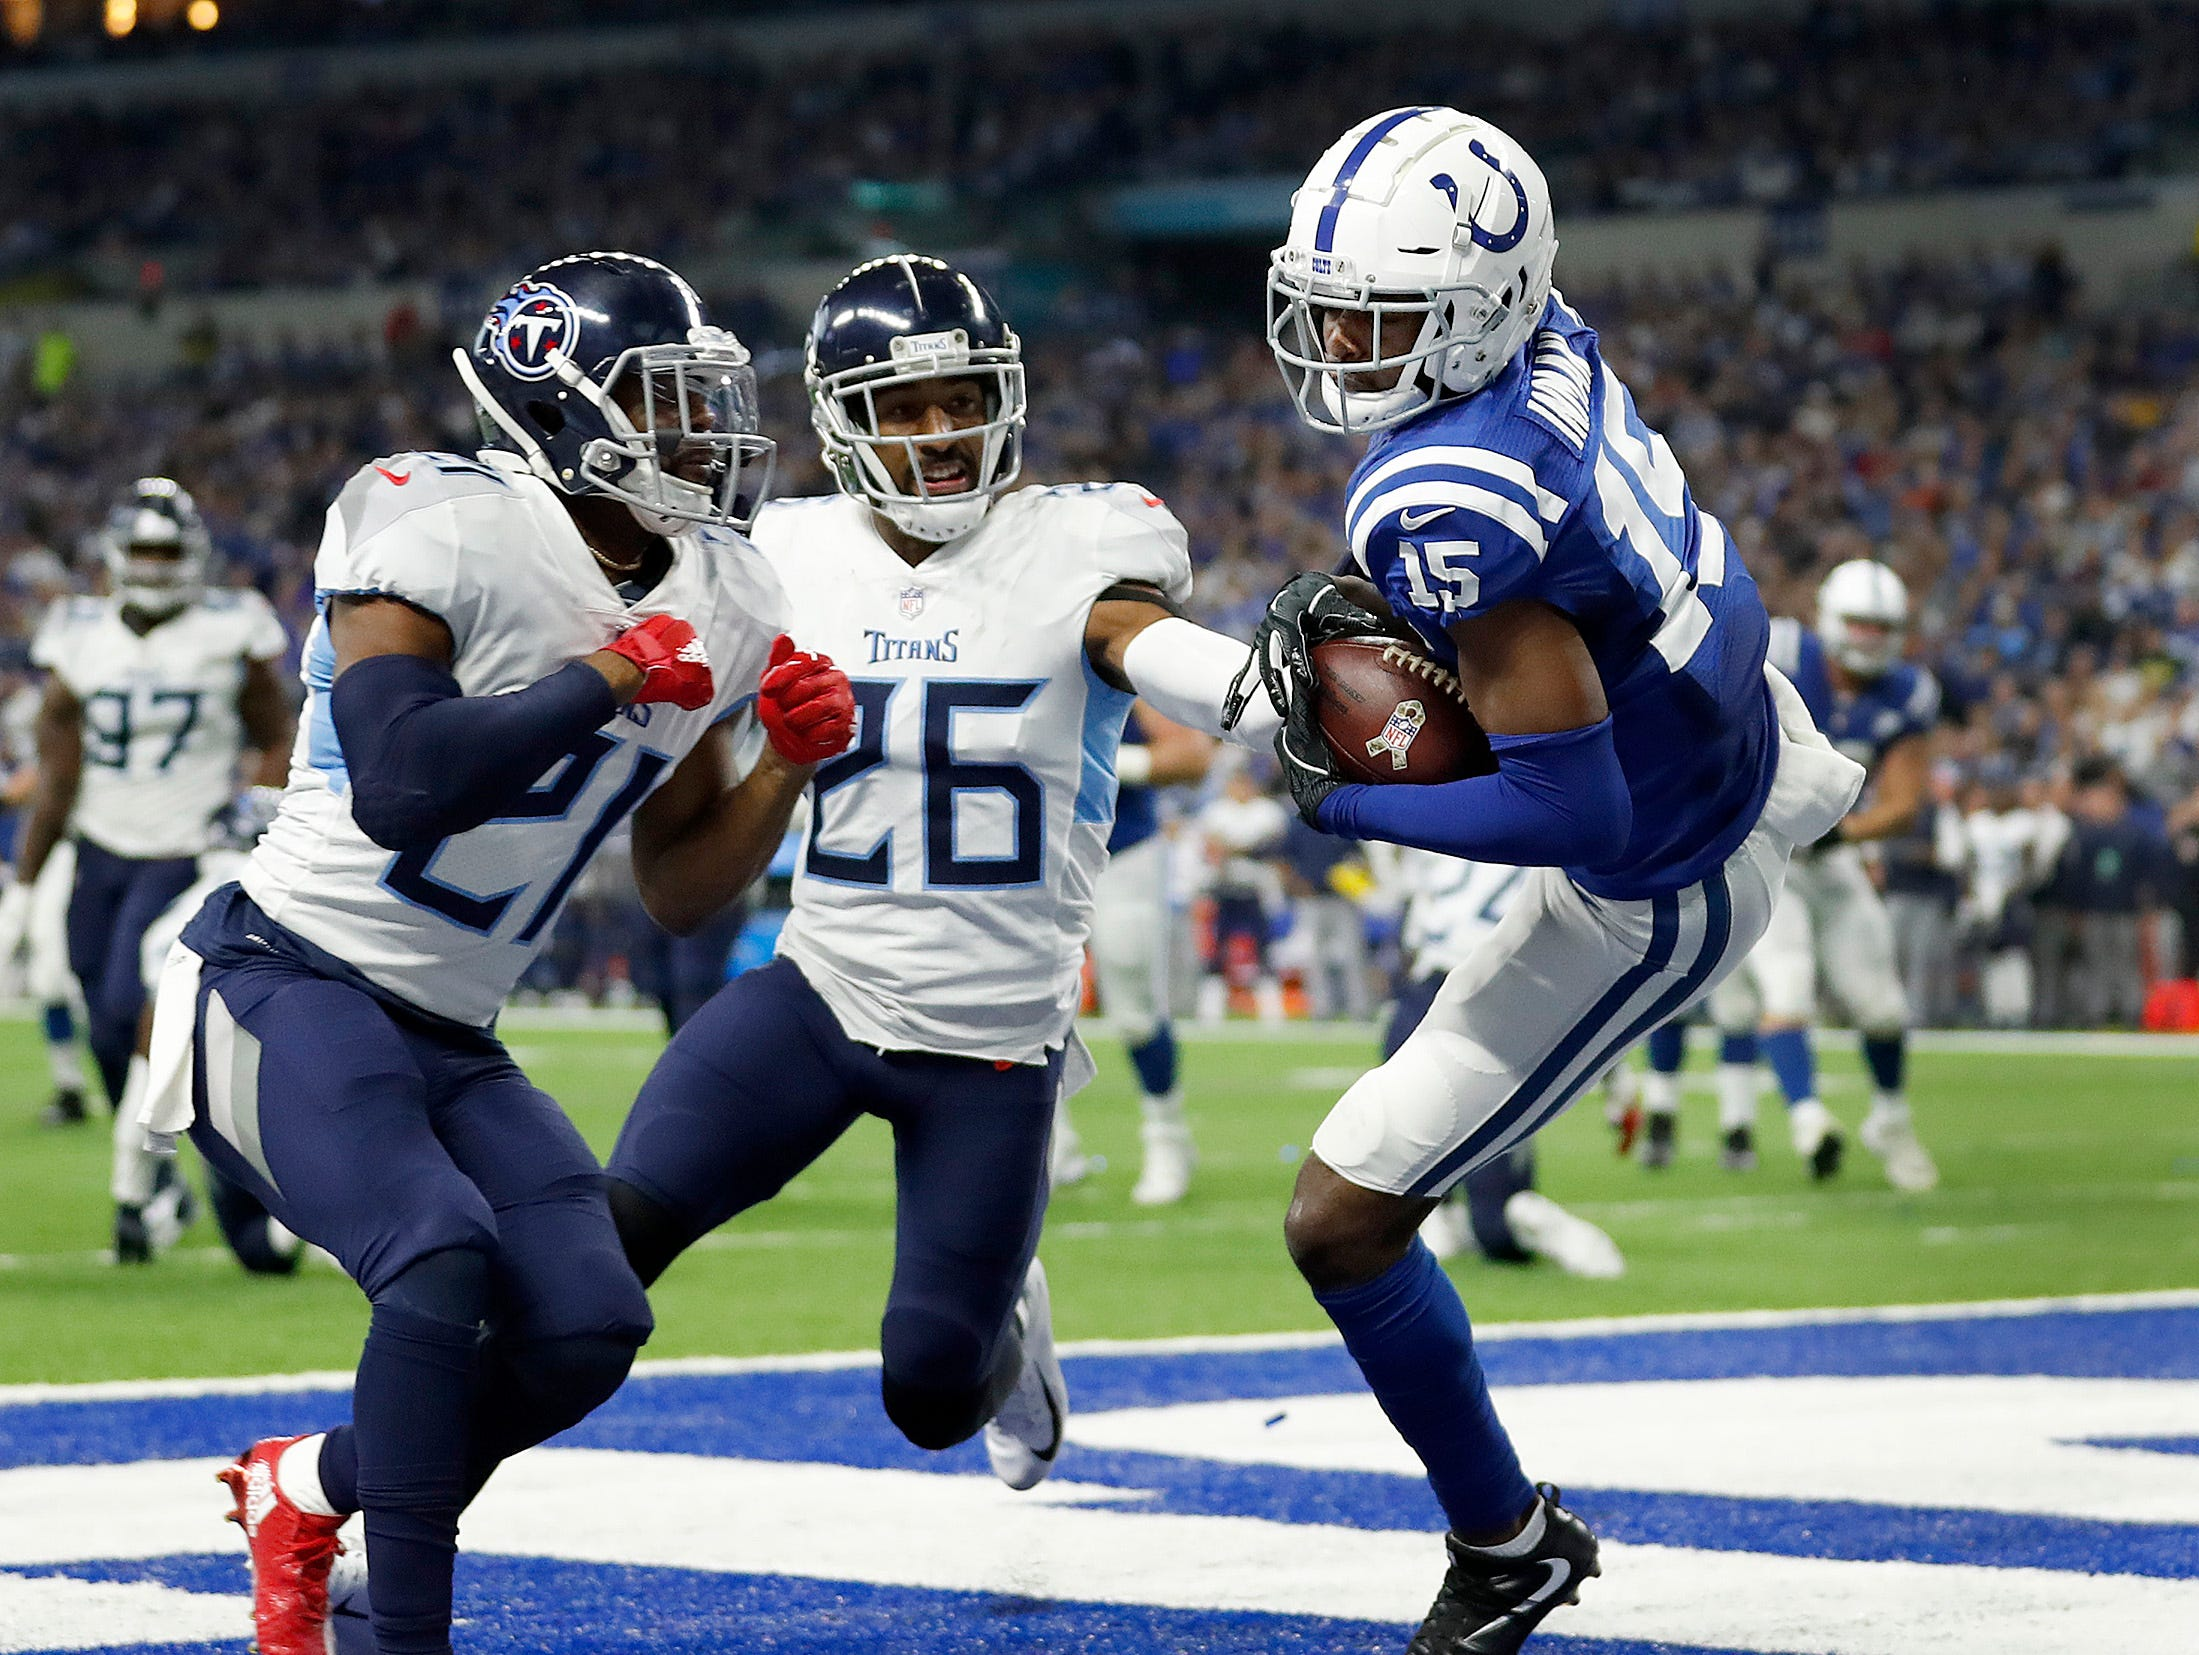 Indianapolis Colts wide receiver Dontrelle Inman (15) makes a touchdown catch behind Tennessee Titans cornerback Malcolm Butler (21) in the second half of the game at Lucas Oil Stadium on Sunday, Nov. 18, 2018. The Colts defeated the Titans 38-10.